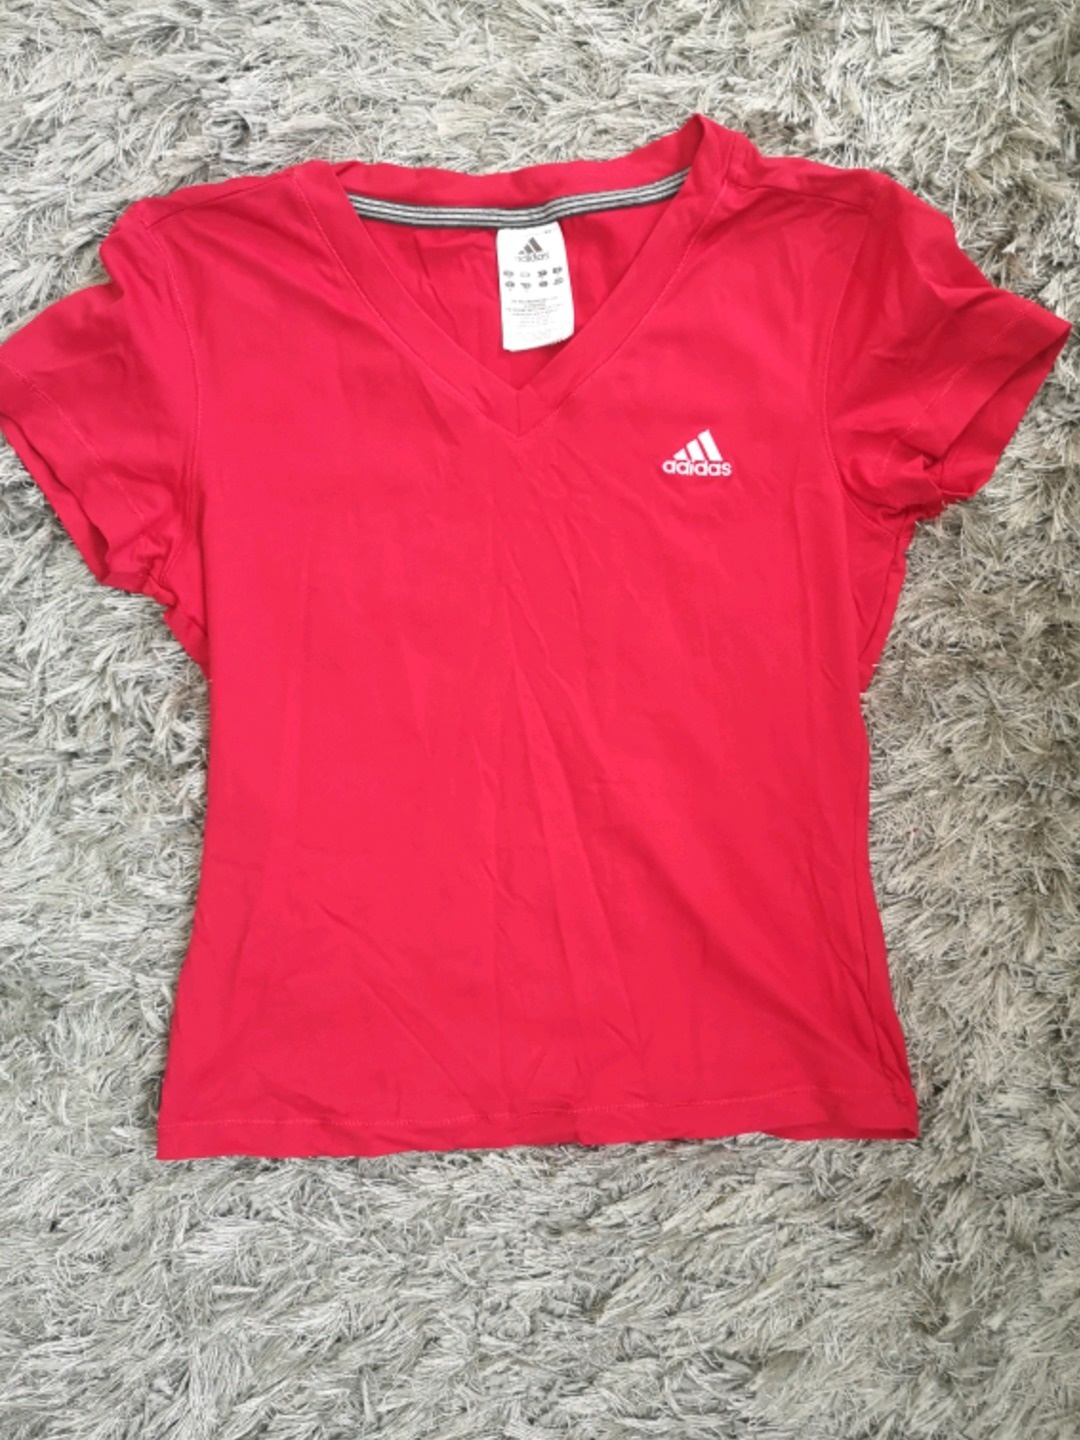 Women's sportswear - ADIDAS photo 1